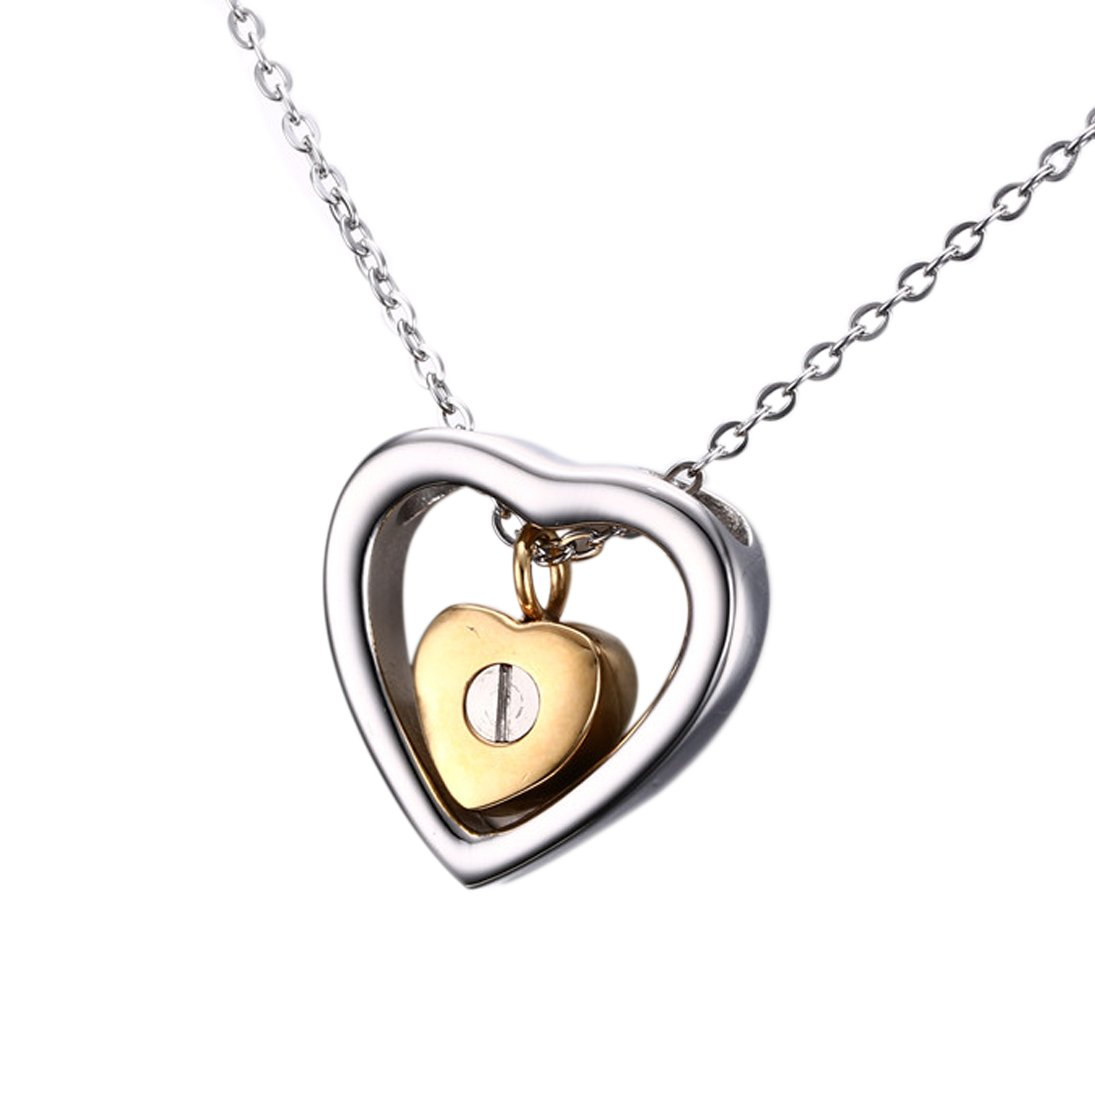 Two Hearts Cremation Urn Necklace, Stainless Steel Jewelry Keepsake Pendant for Ashes